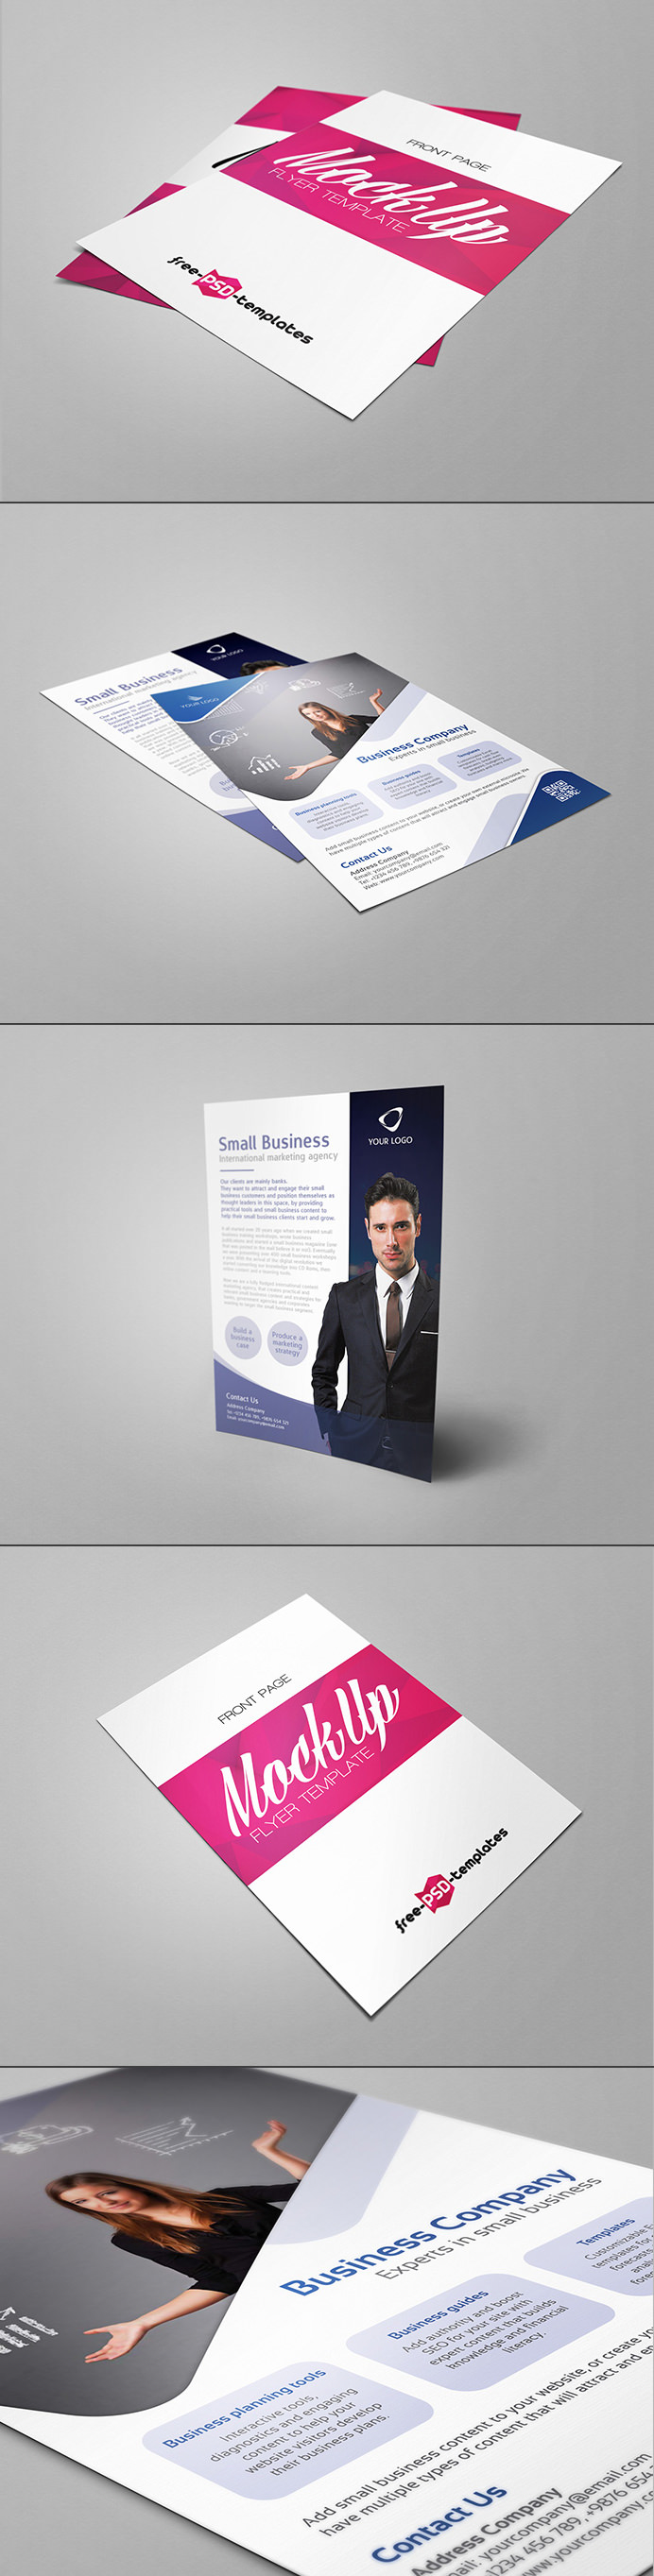 Download Photorealistic Free PSD Flyer Mockup